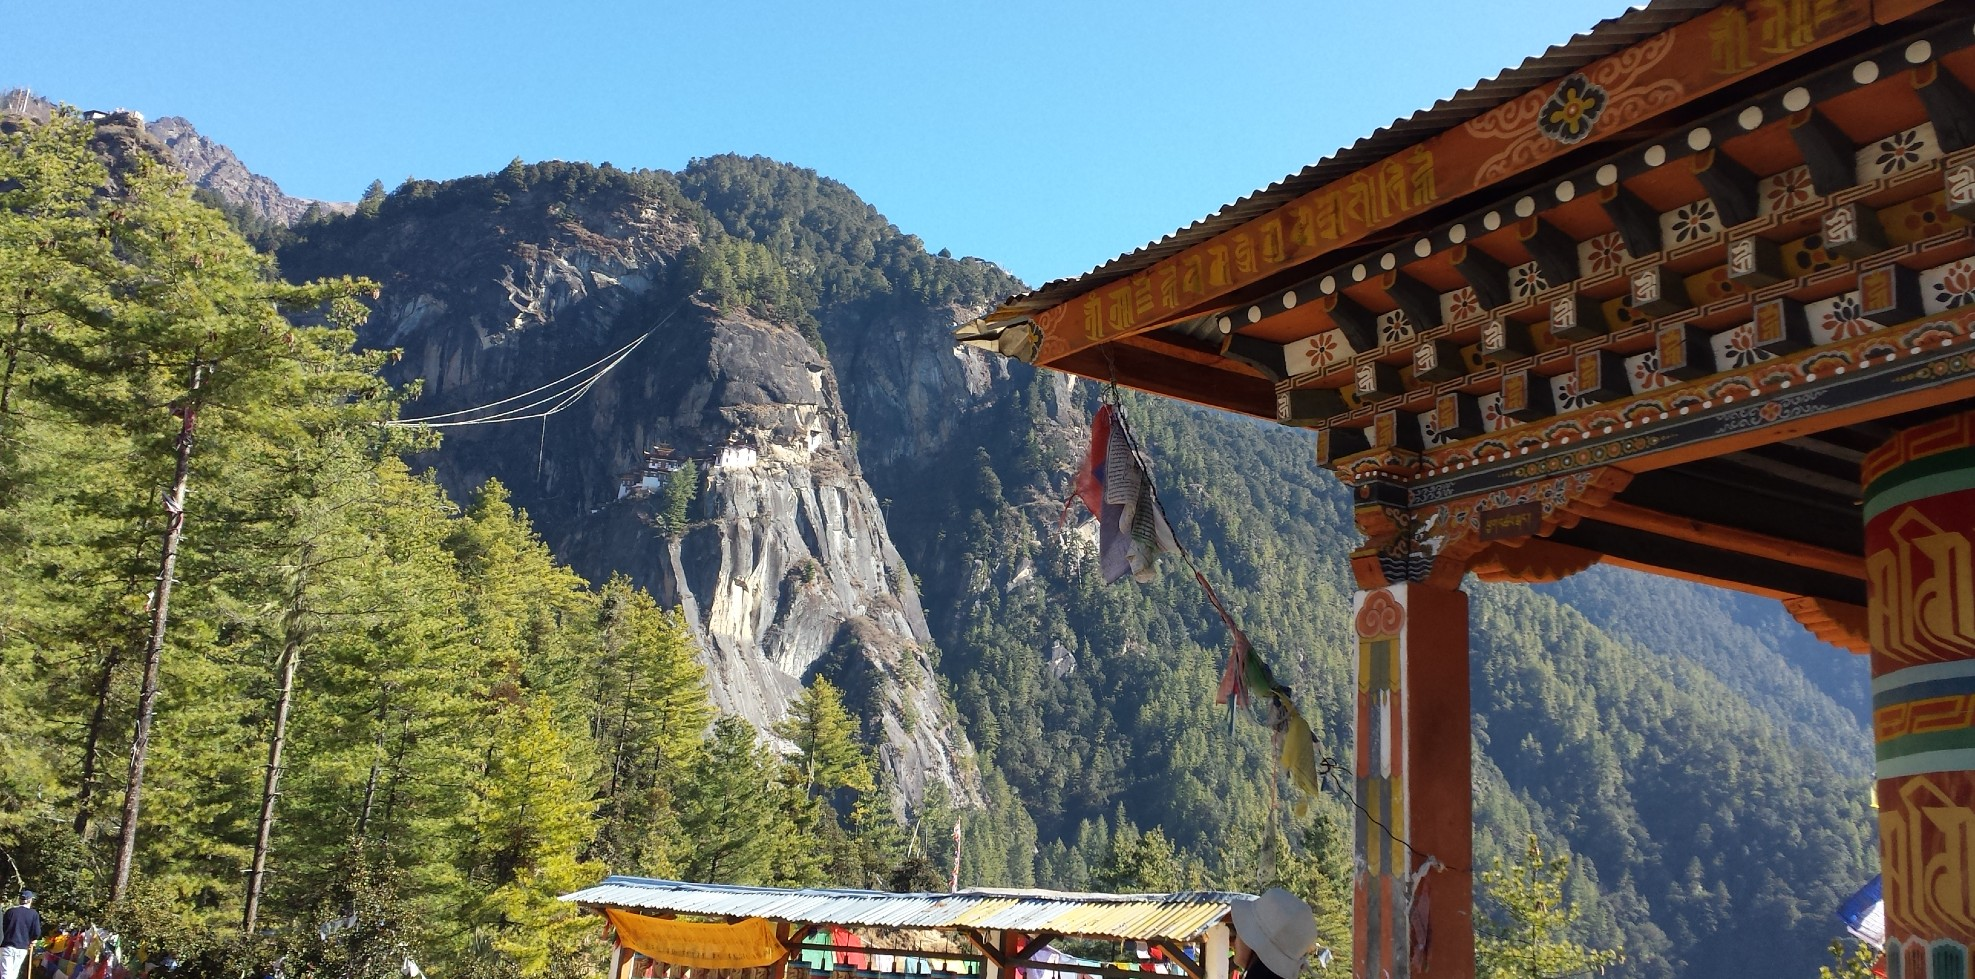 How To Obtain Bhutan Visa Traveling From Nepal?